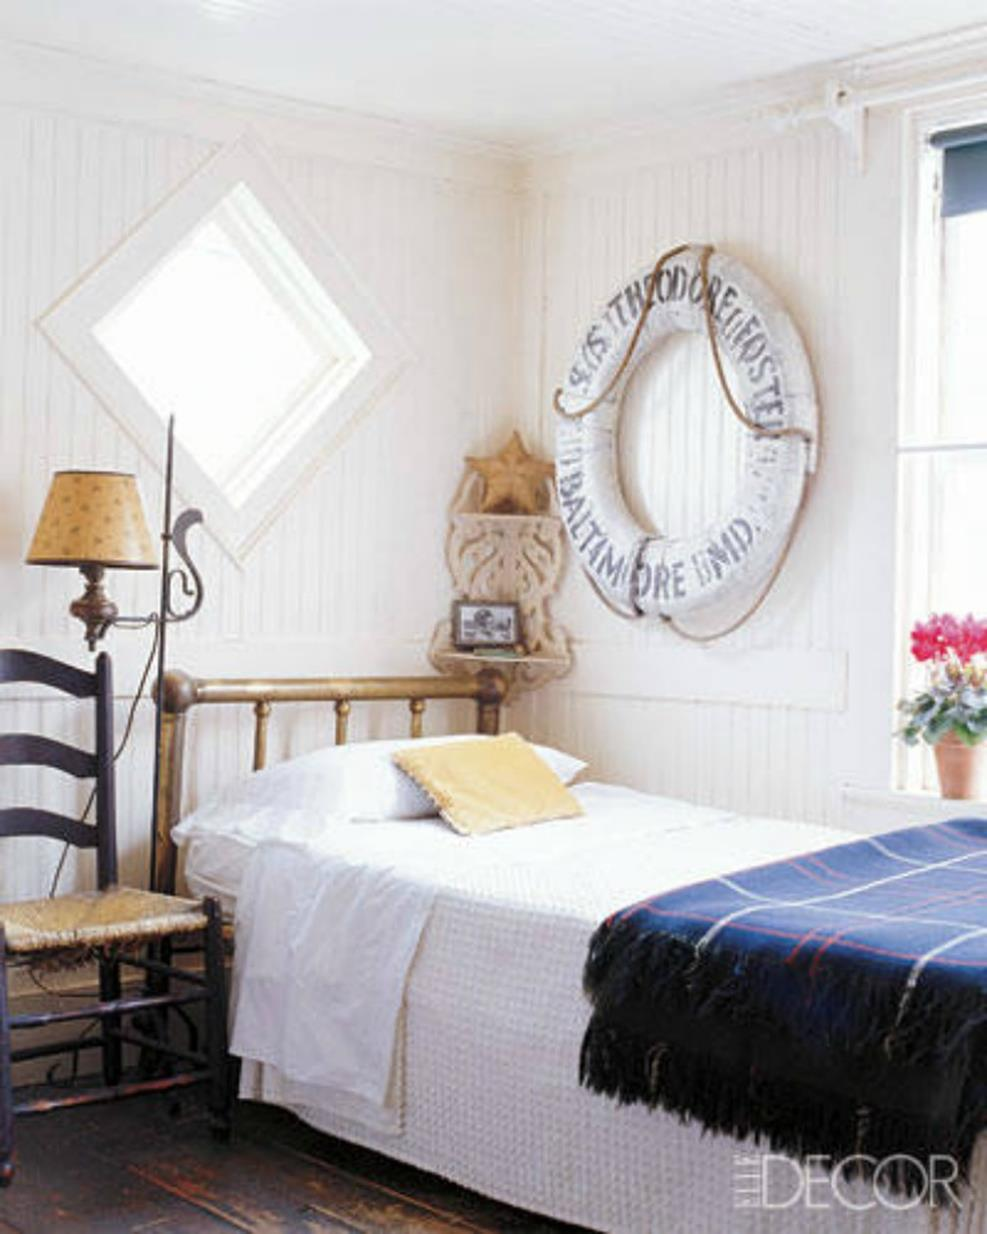 Nautical Themed Bedroom Design and Decor Ideas 8